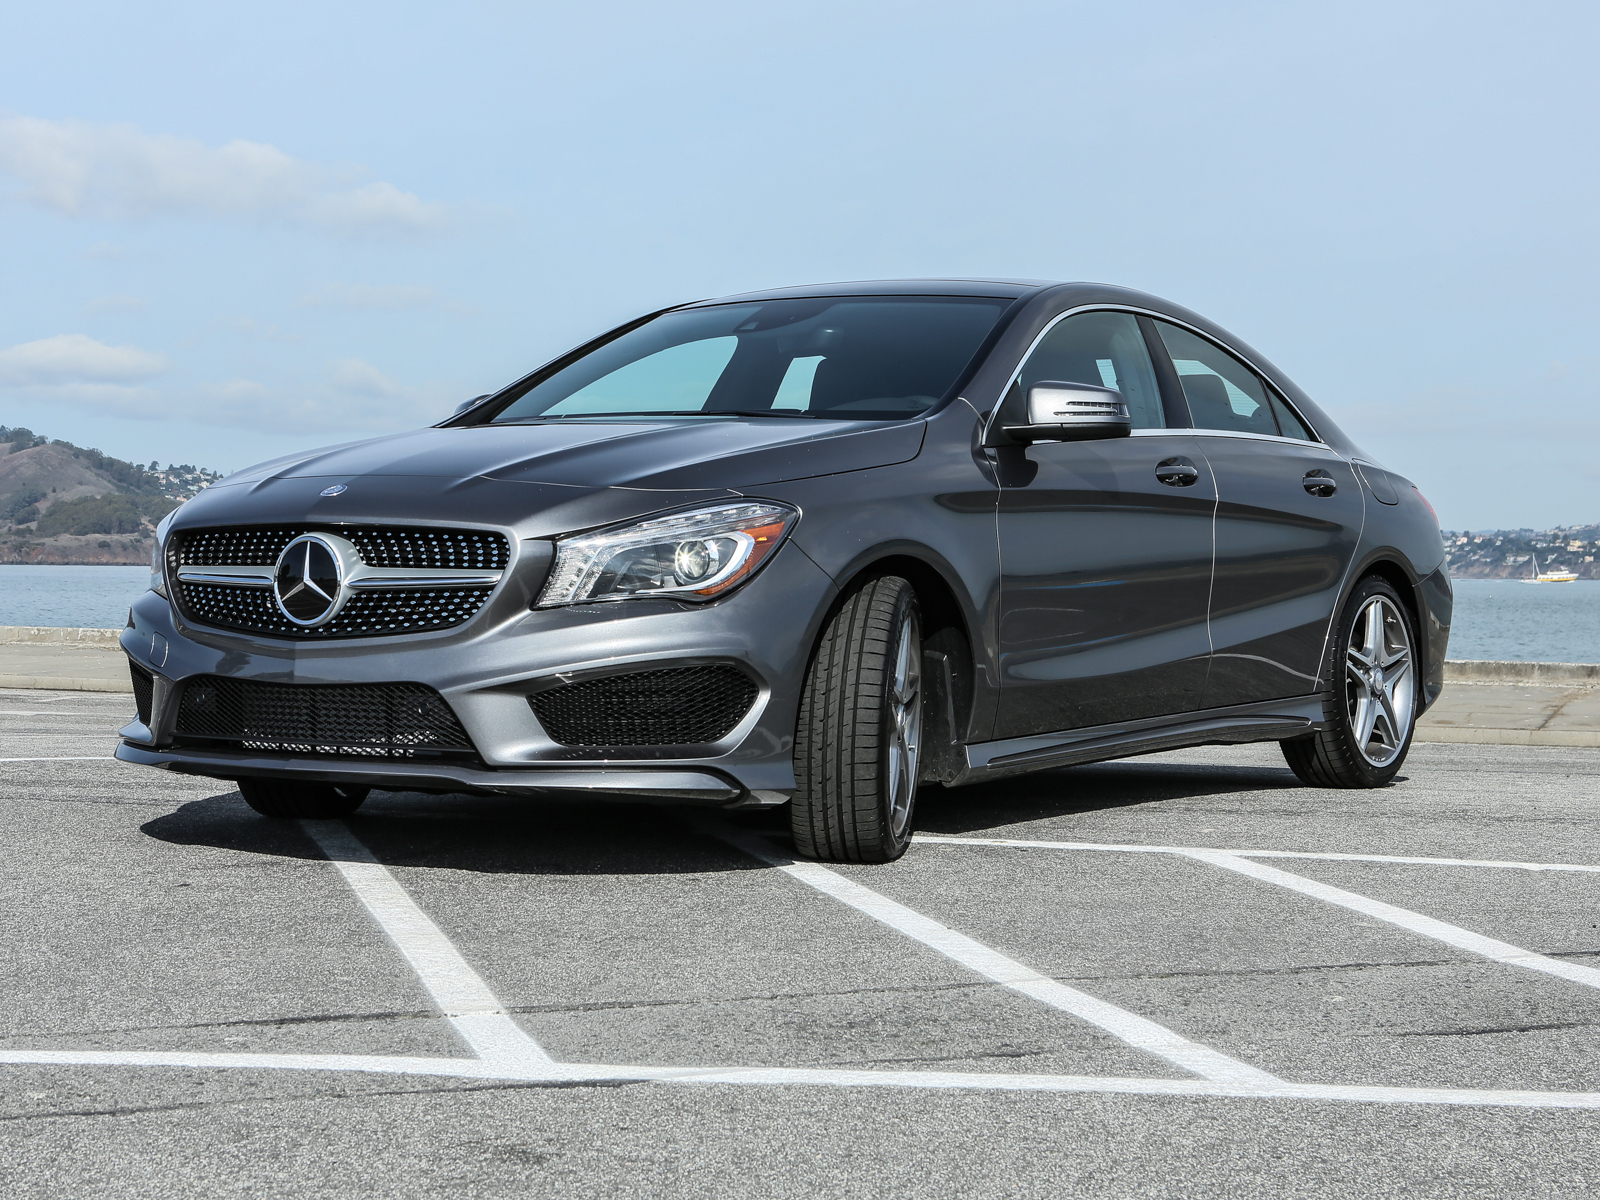 2014 mercedes benz cla250 review rough ride takes toll on luxury. Cars Review. Best American Auto & Cars Review